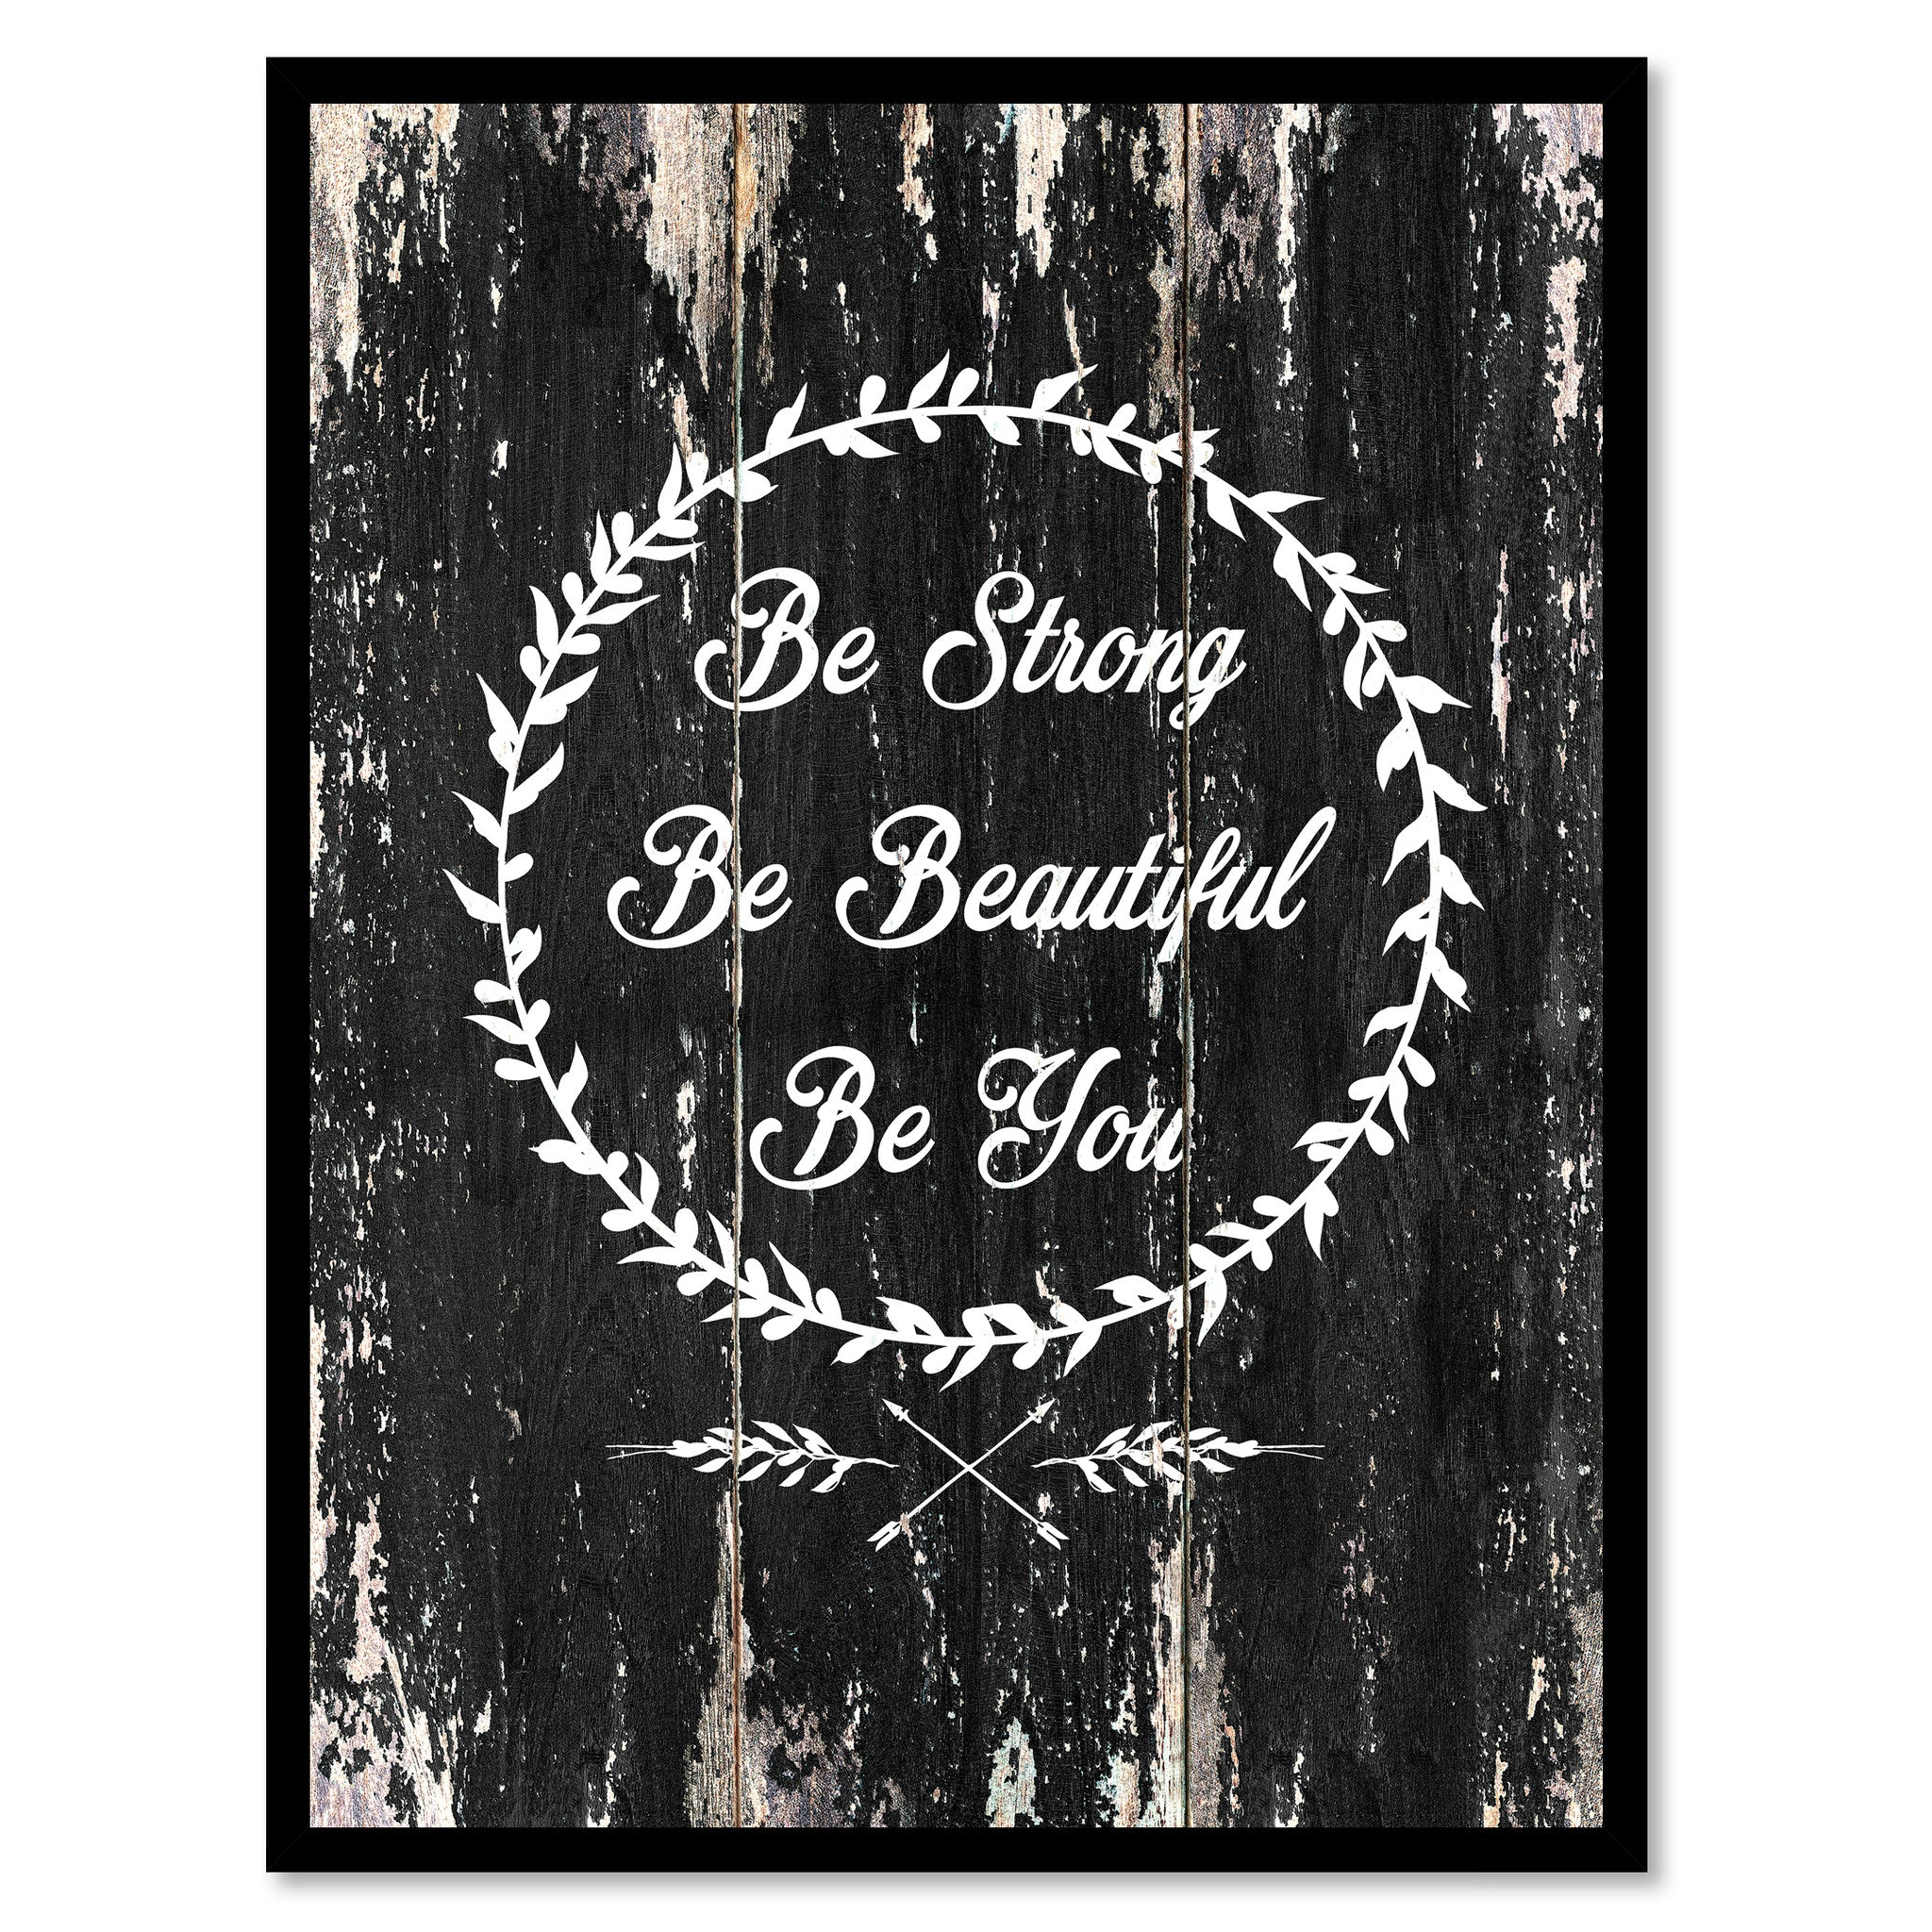 Be strong be beautiful be you 1 Motivational Quote Saying Canvas Print with Picture Frame Home Decor Wall Art